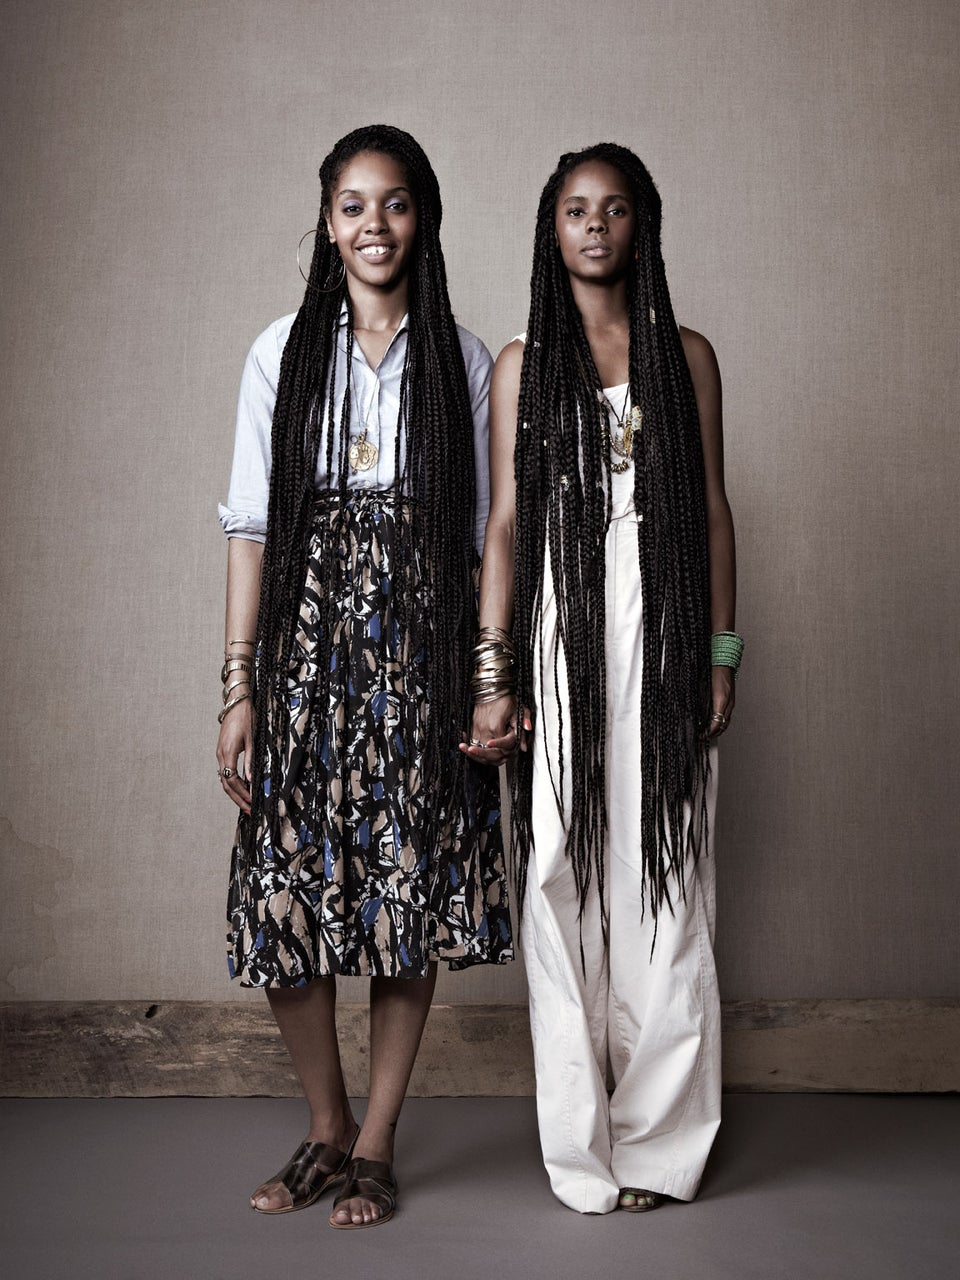 Designers of Color Are Getting Some Much Needed Attention And Investment